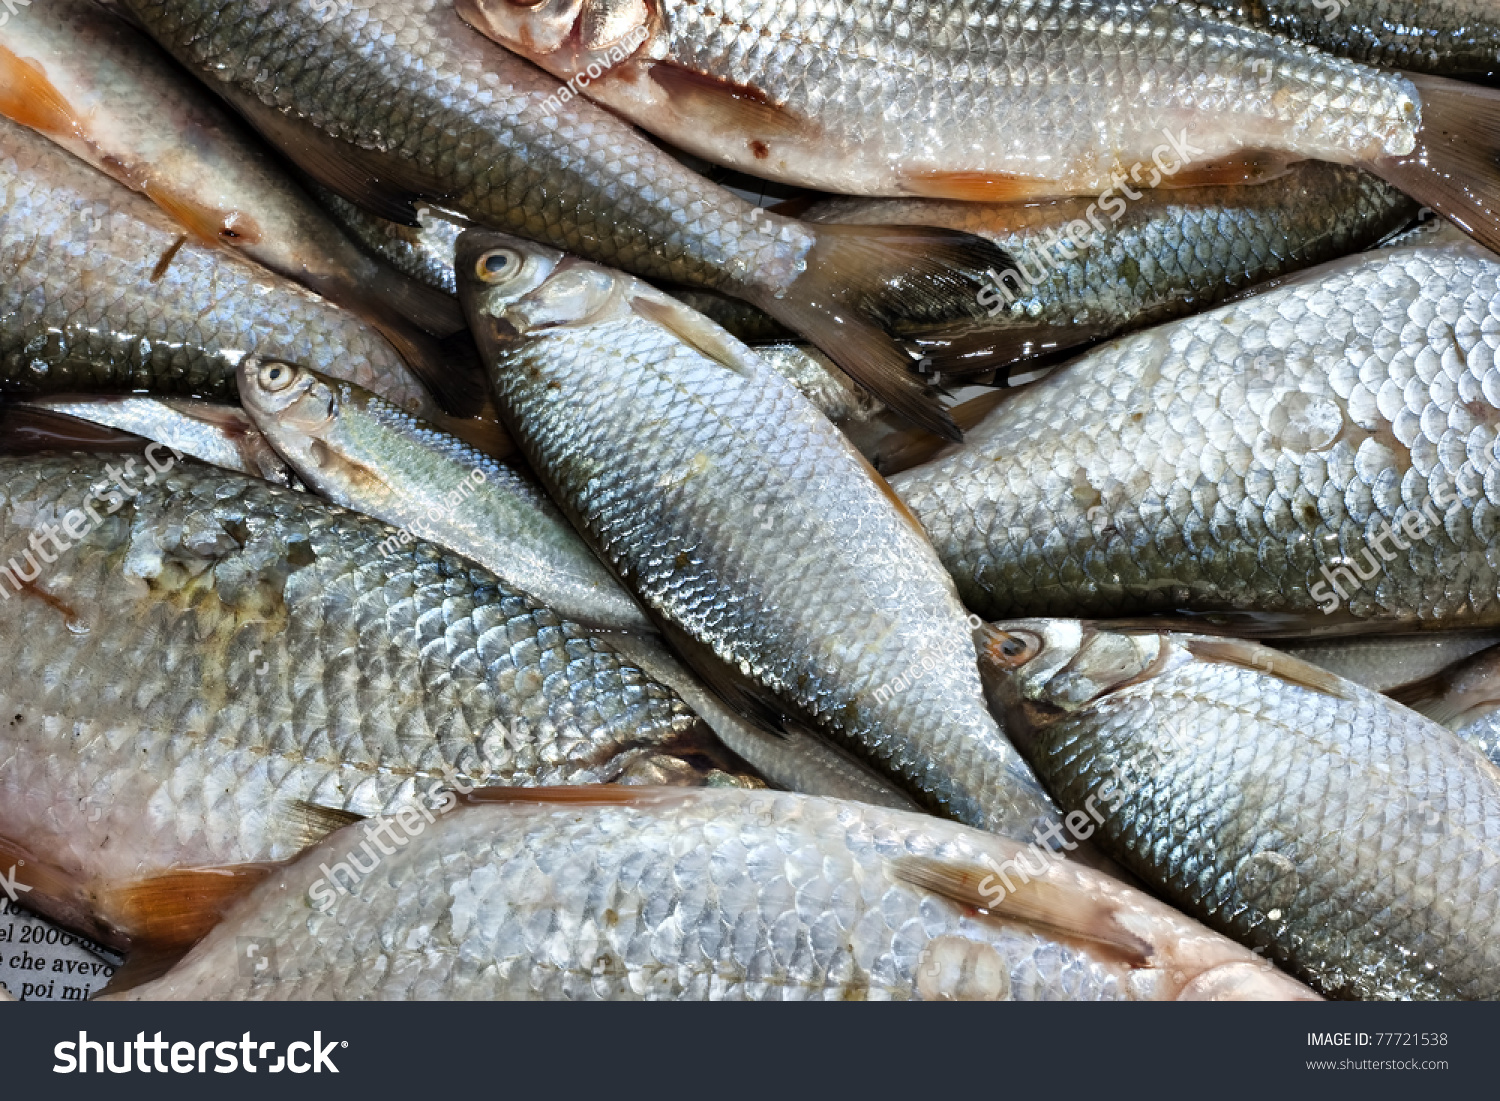 Background full of small edible freshwater fish stock for Edible freshwater fish